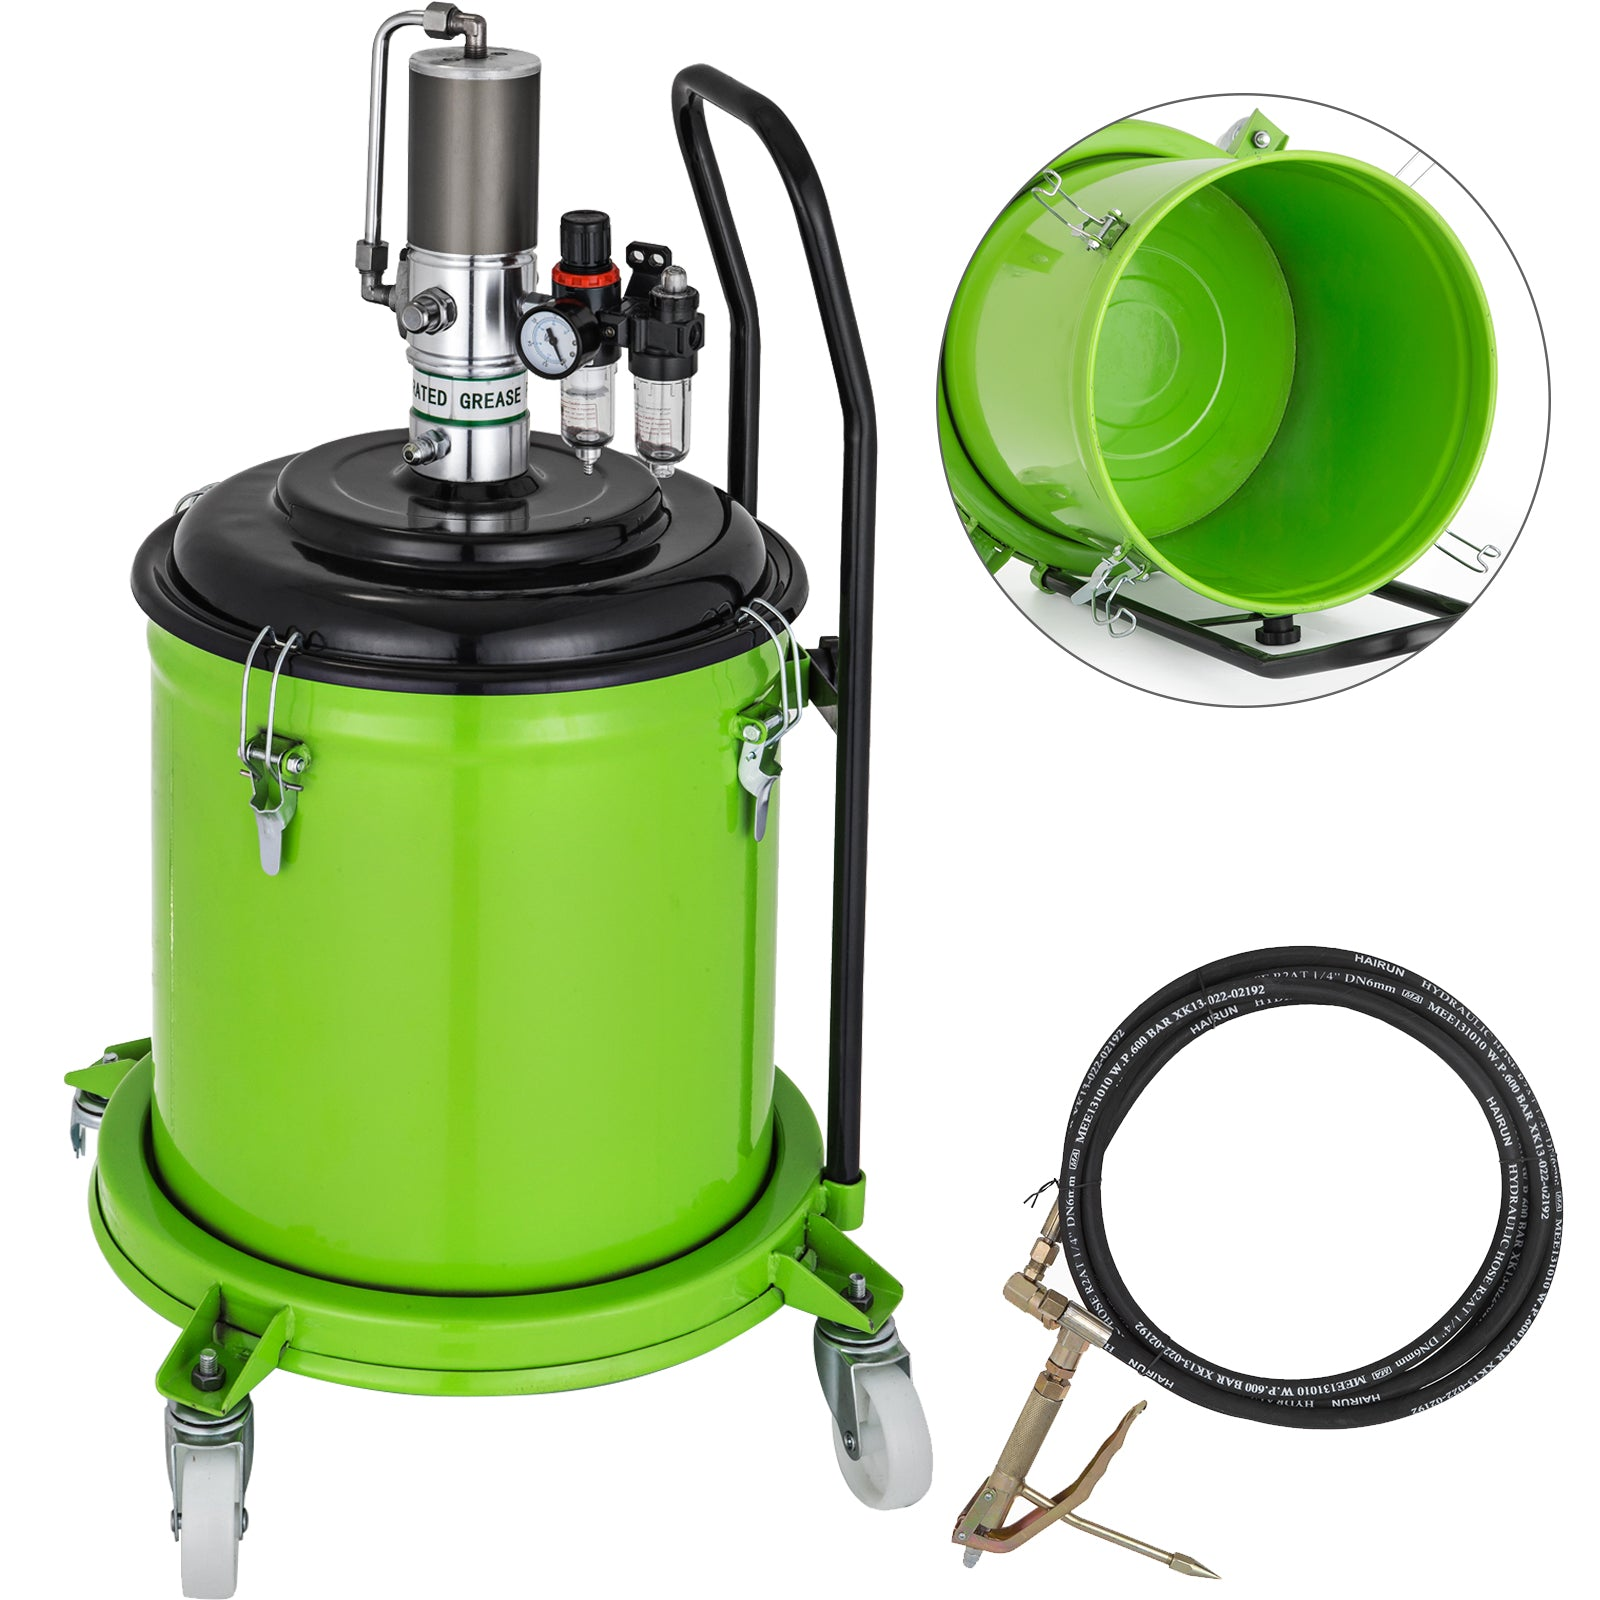 7.5 Gallon Grease Pump Air Pneumatic Compressed High Pressure Lubricator